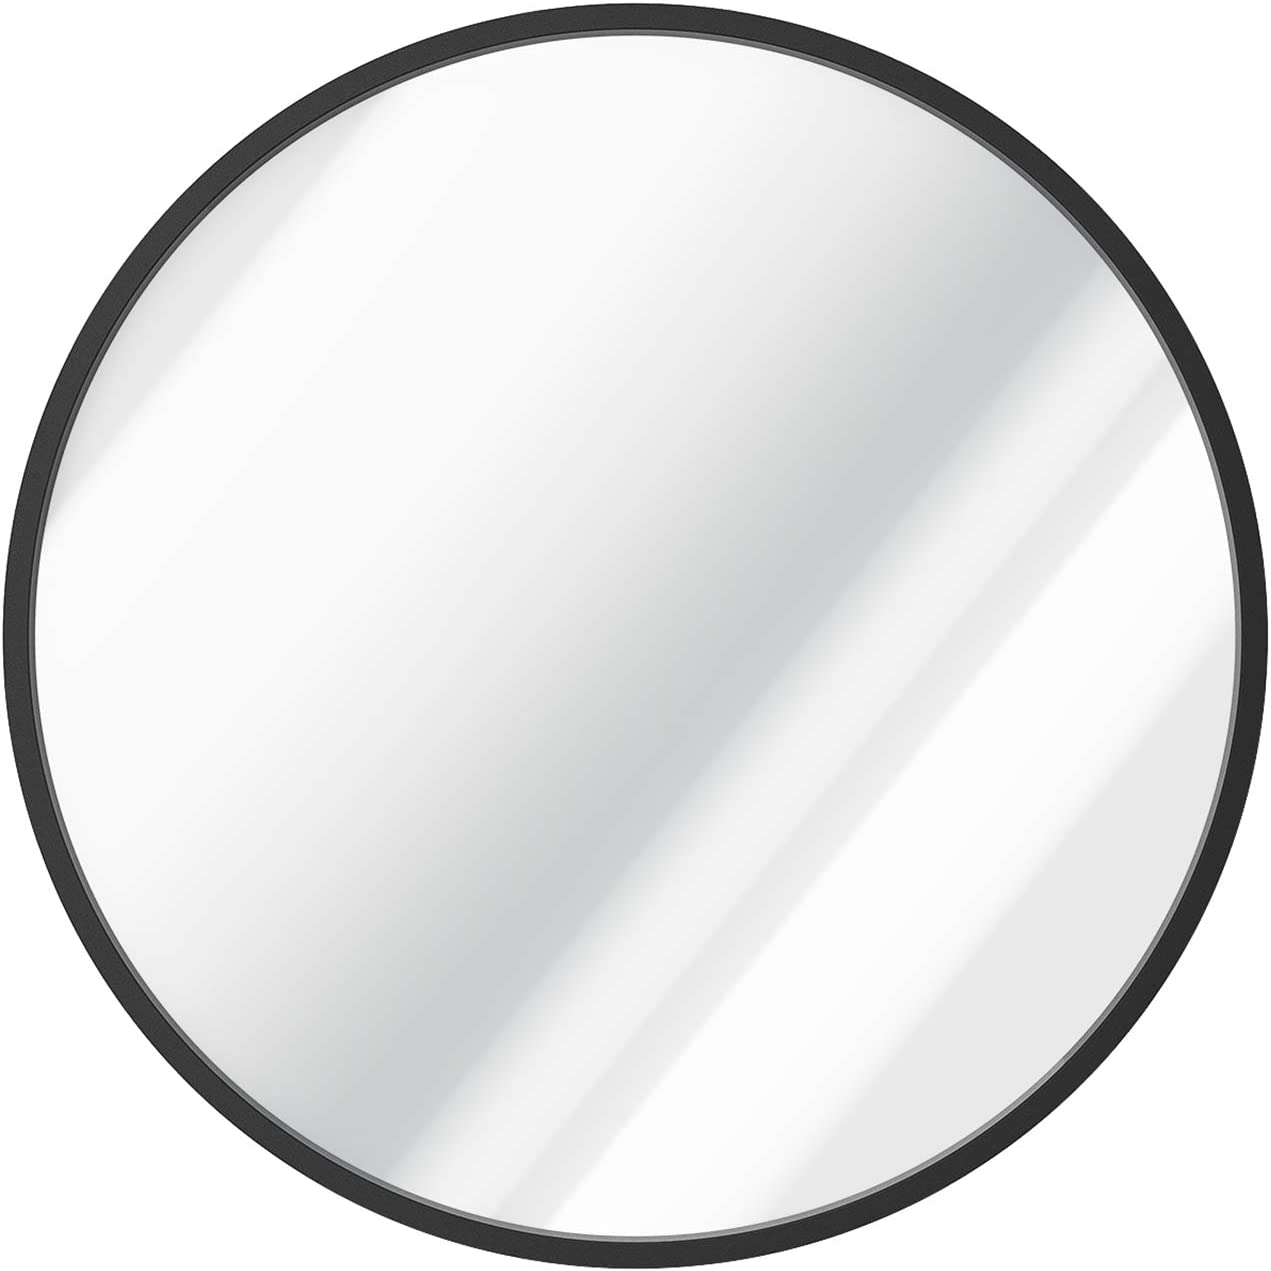 USHOWER 30-Inch Black Round Wall Mirror, Large Metal Frame Decor Mirror for Bathroom, Entryway, Vanity, and More, Farmhouse & Modern Style